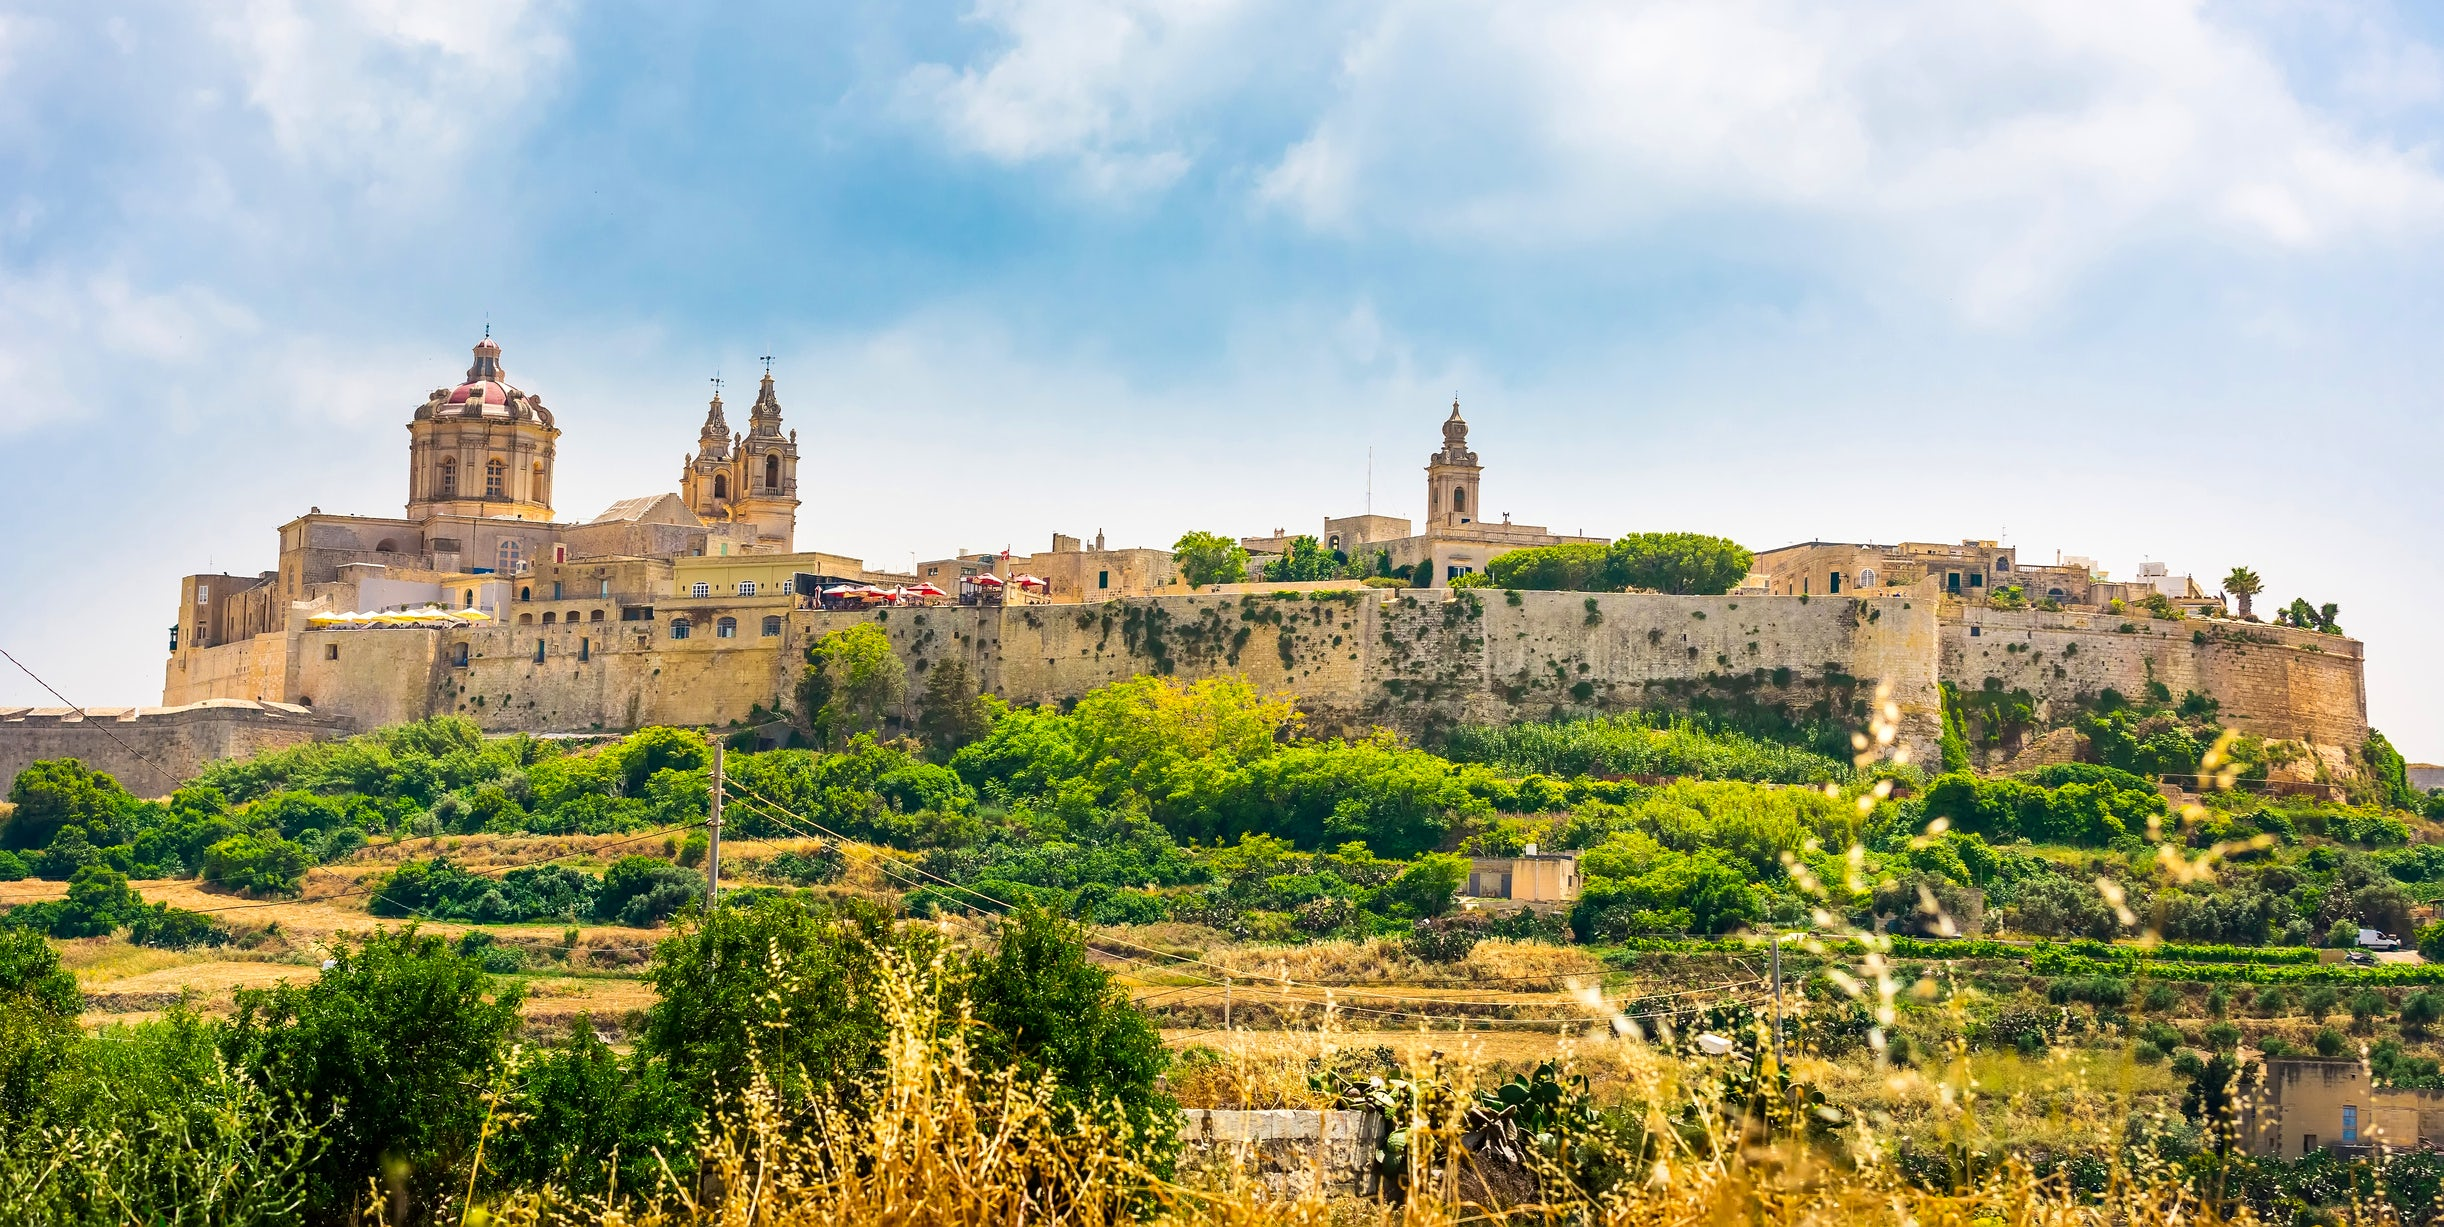 Mdina: The Silent City of Malta